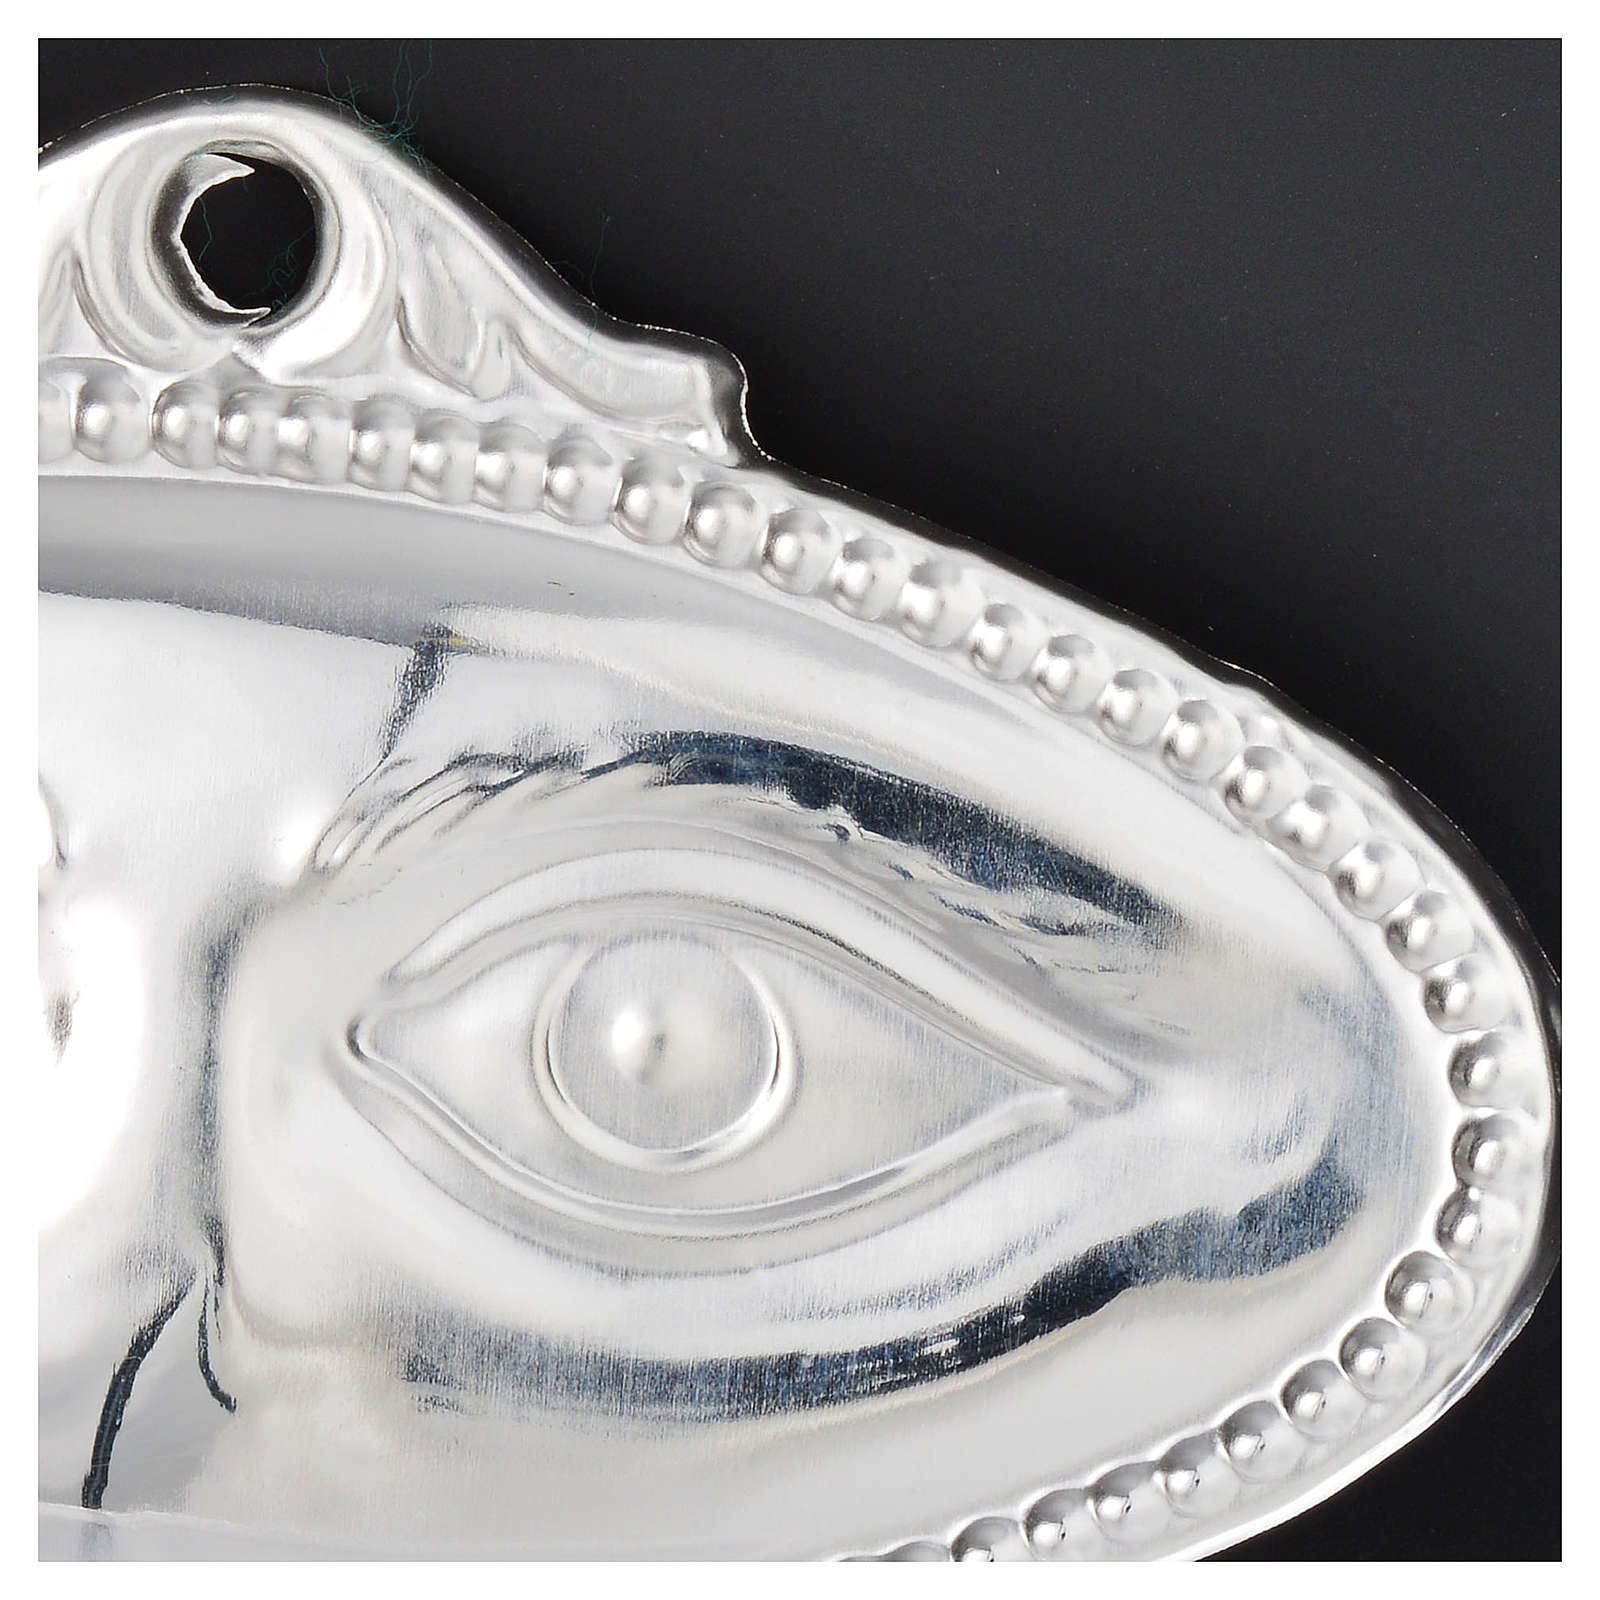 Ex-voto, polished eyes in sterling silver or metal 8.5x4.5cm 3